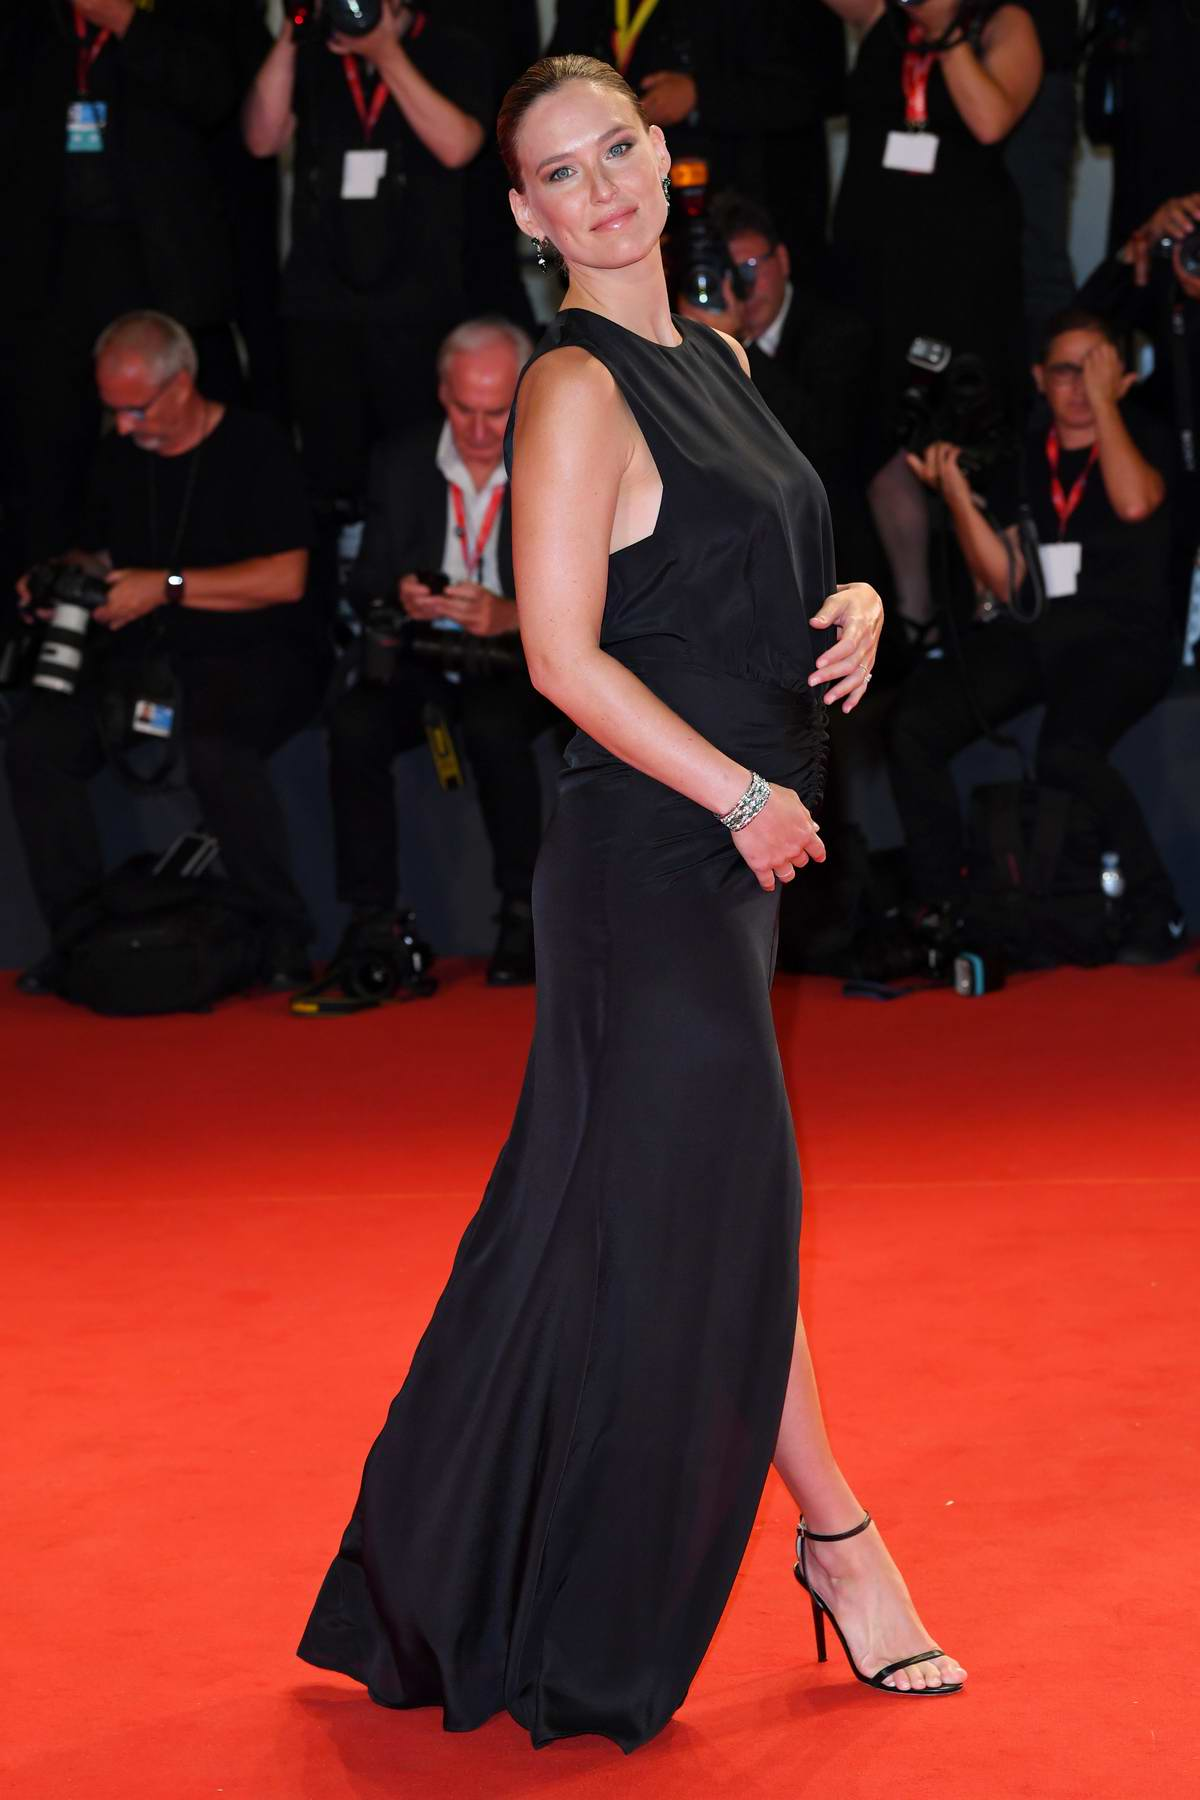 Bar Refaeli attends 'Ad Astra' screening during during the 76th Venice Film Festival at Sala Grande in Venice, Italy